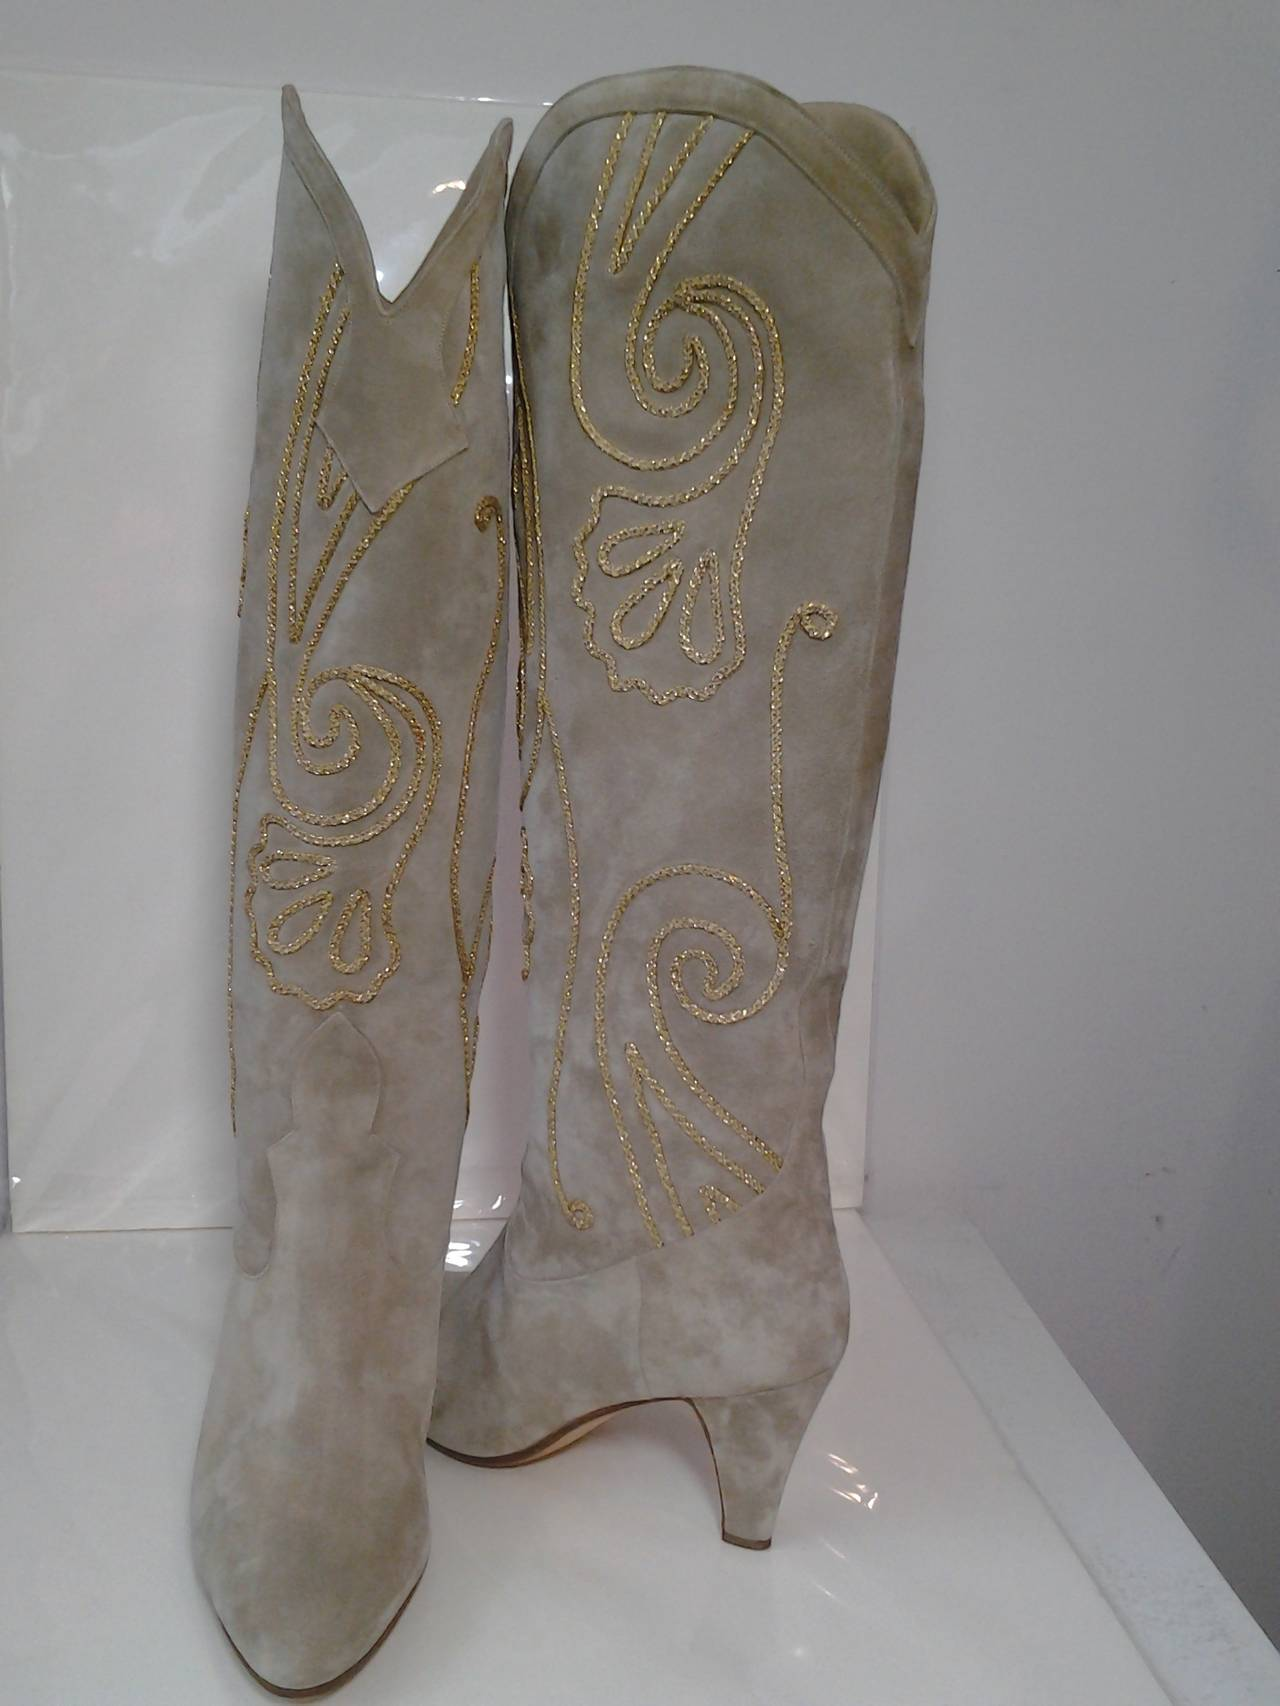 A gorgeous pair of 1980s Andrea Pfister taupe suede western-styled heeled boots.  Uppers are embellished with gold soutache braid work.